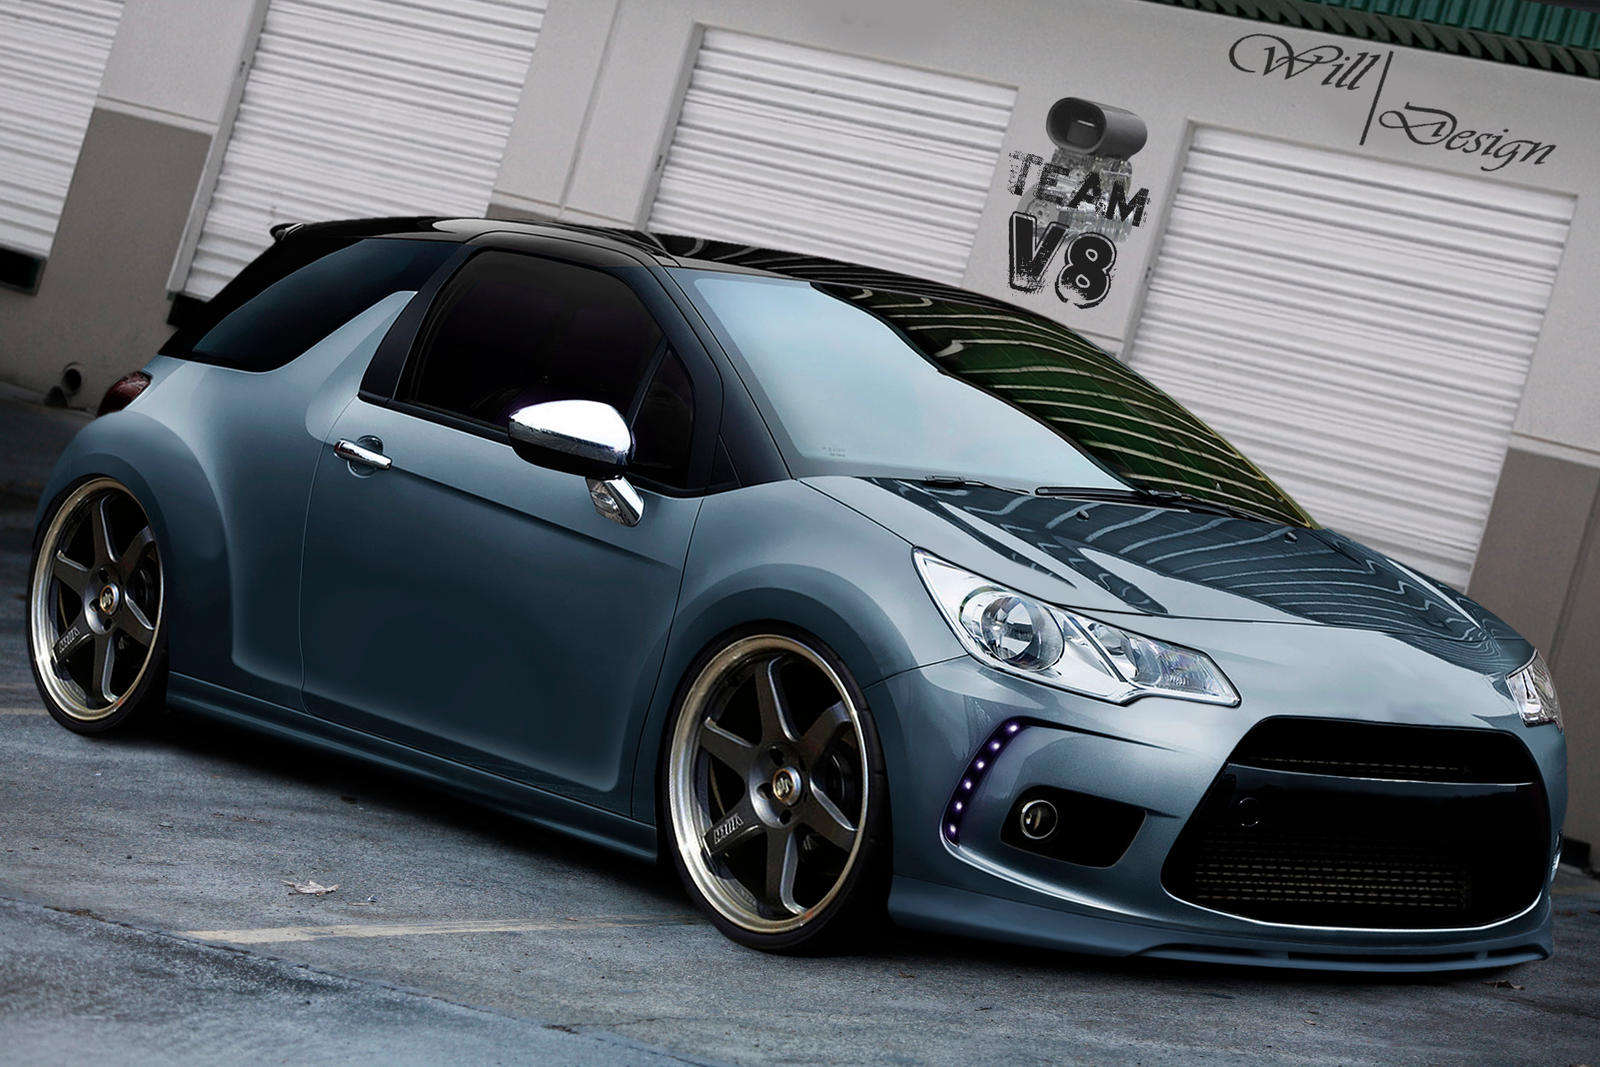 citroen ds3 by willcardesign on deviantart